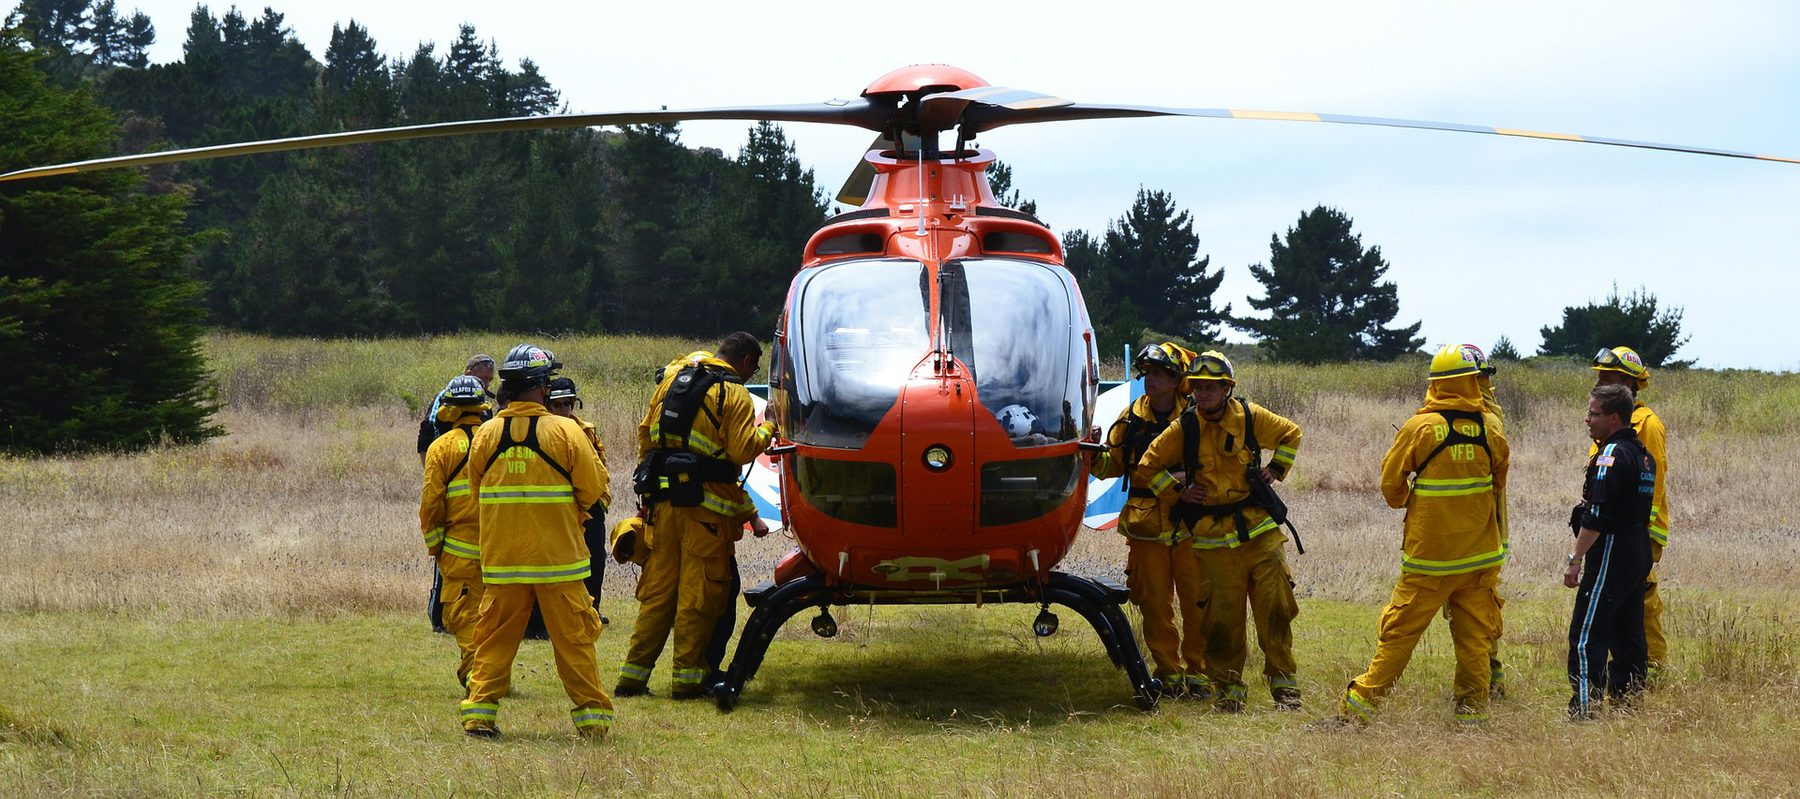 Training and Development (Sector Header: Rescue Training Exercise, Helicopter)